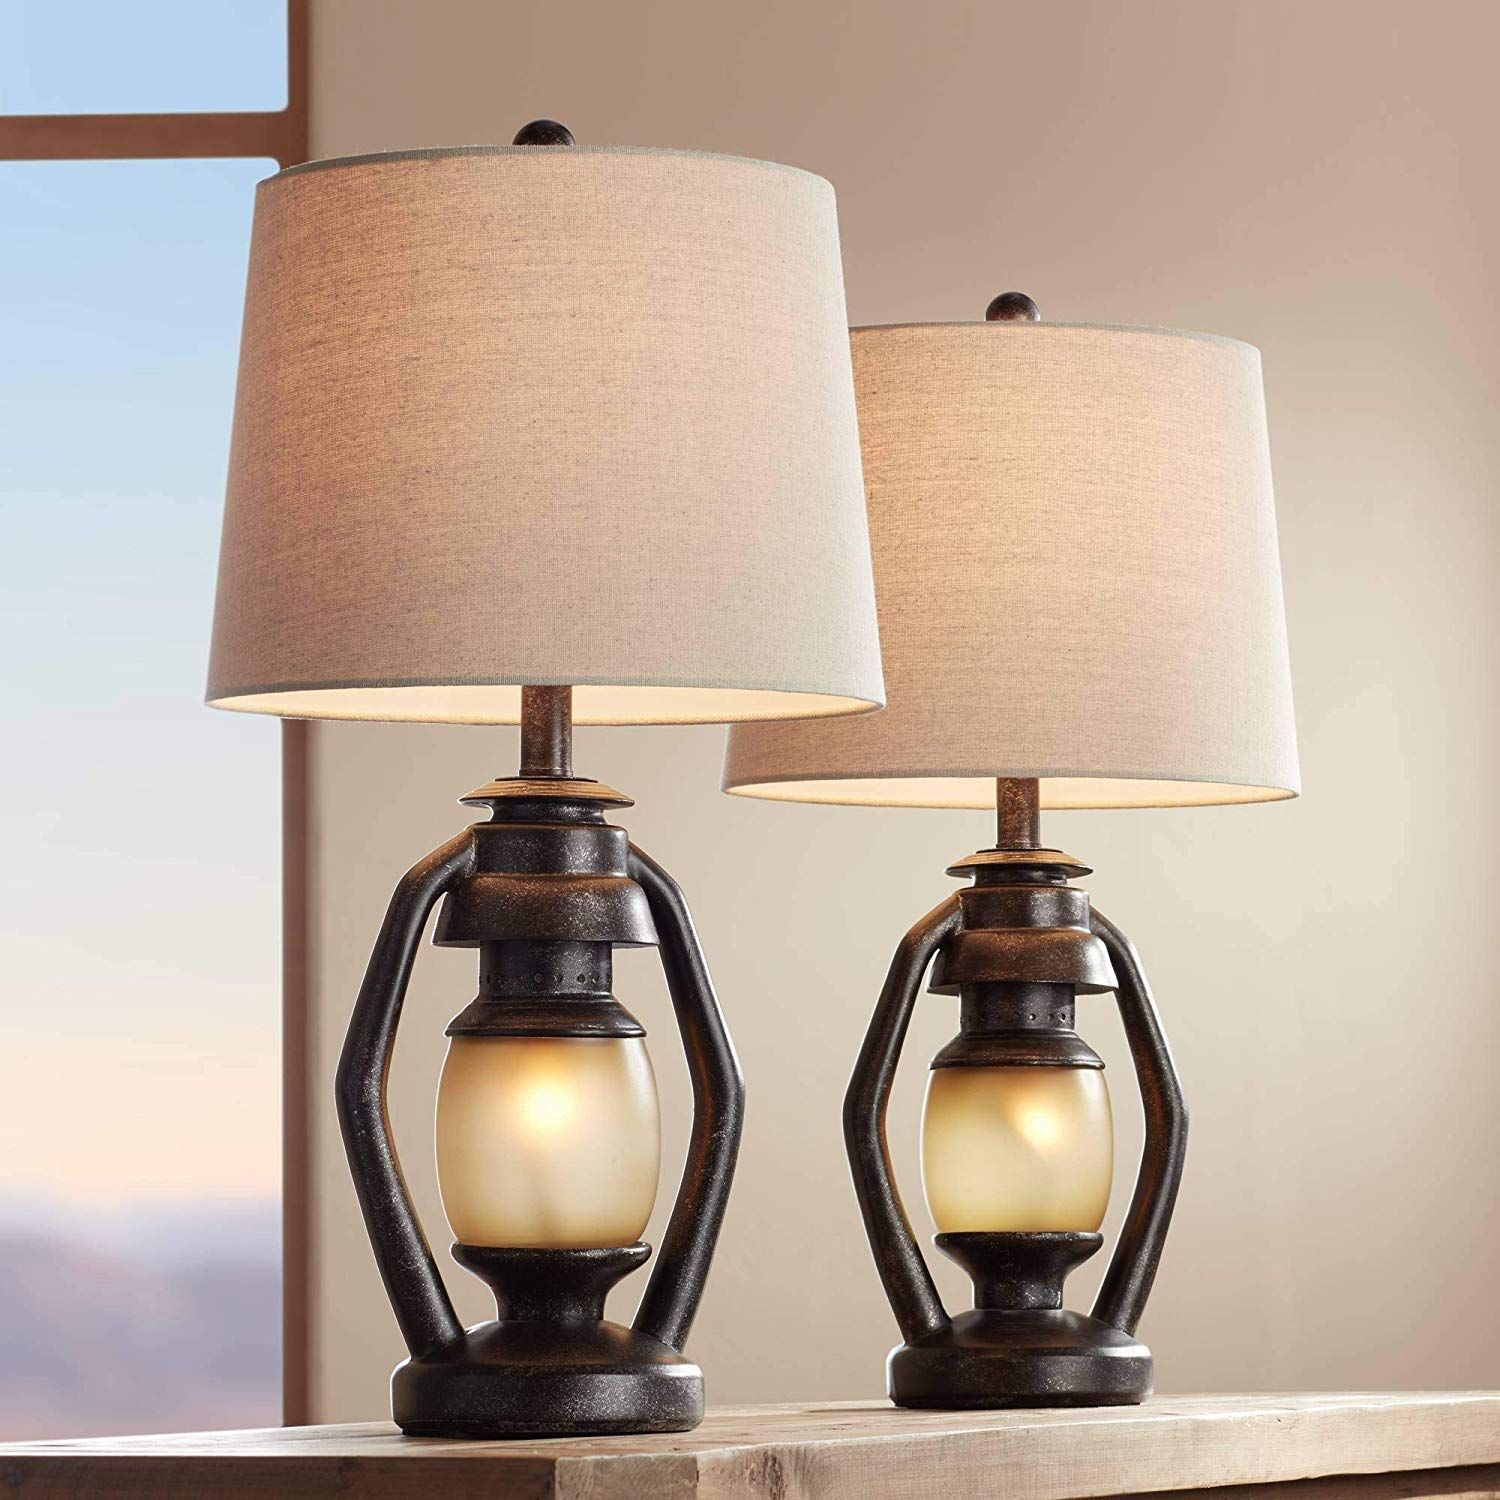 Table Lamp In 2020 Farmhouse Table Lamps Lantern Table Lamp Bedroom Lamps Nightstand